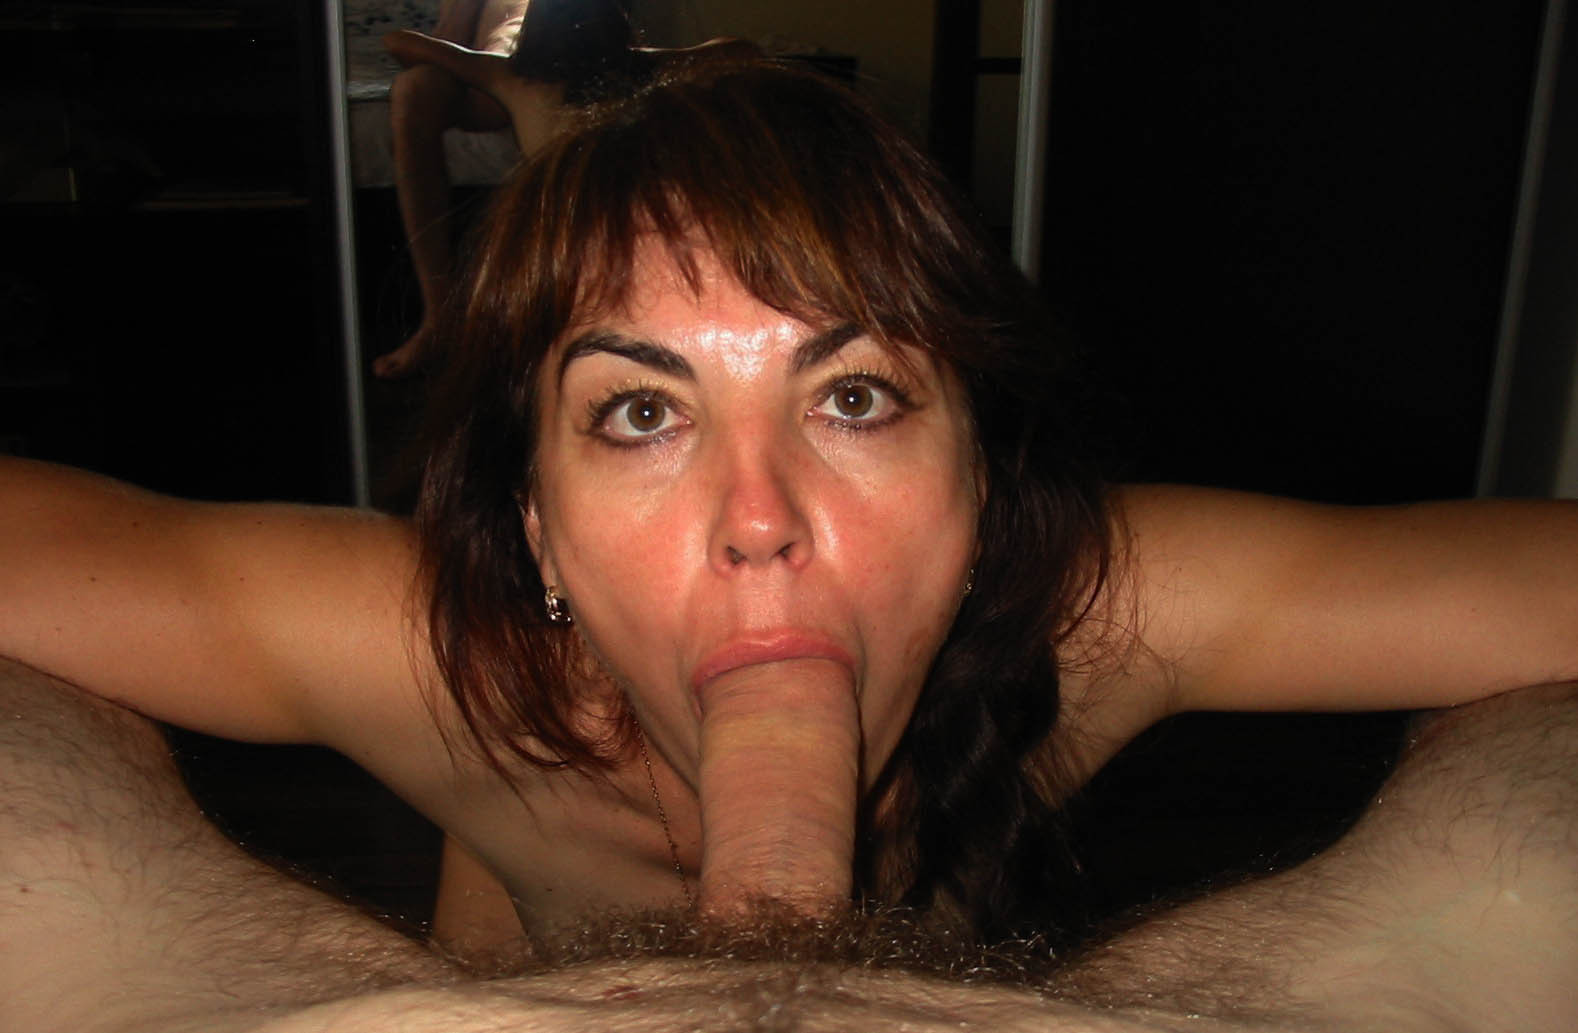 wives blowjobs Mature